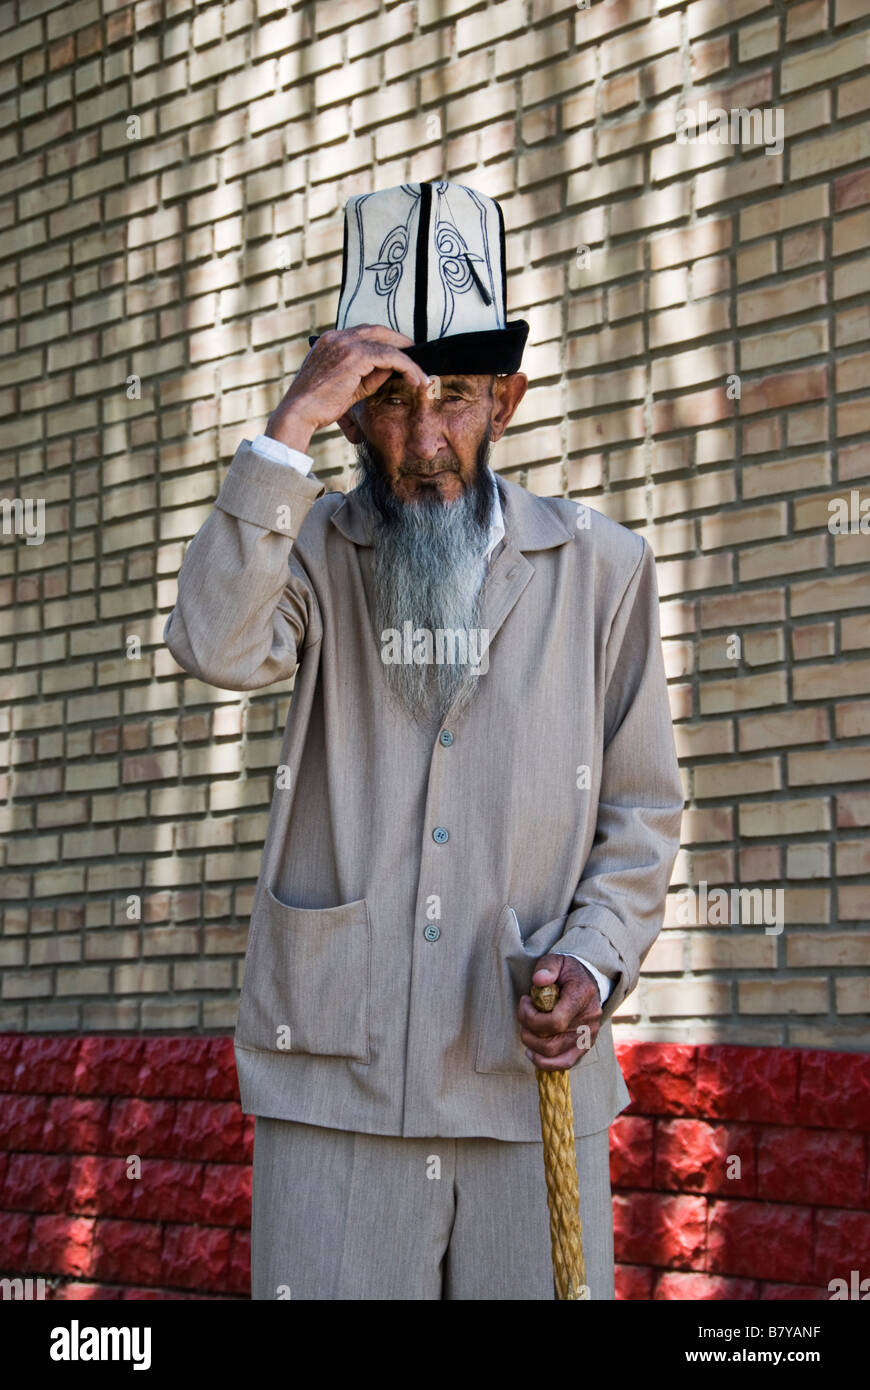 Old Kyrgyz man dressed with typical hat and walking stick Kochkor Kyrgyzstan - Stock Image